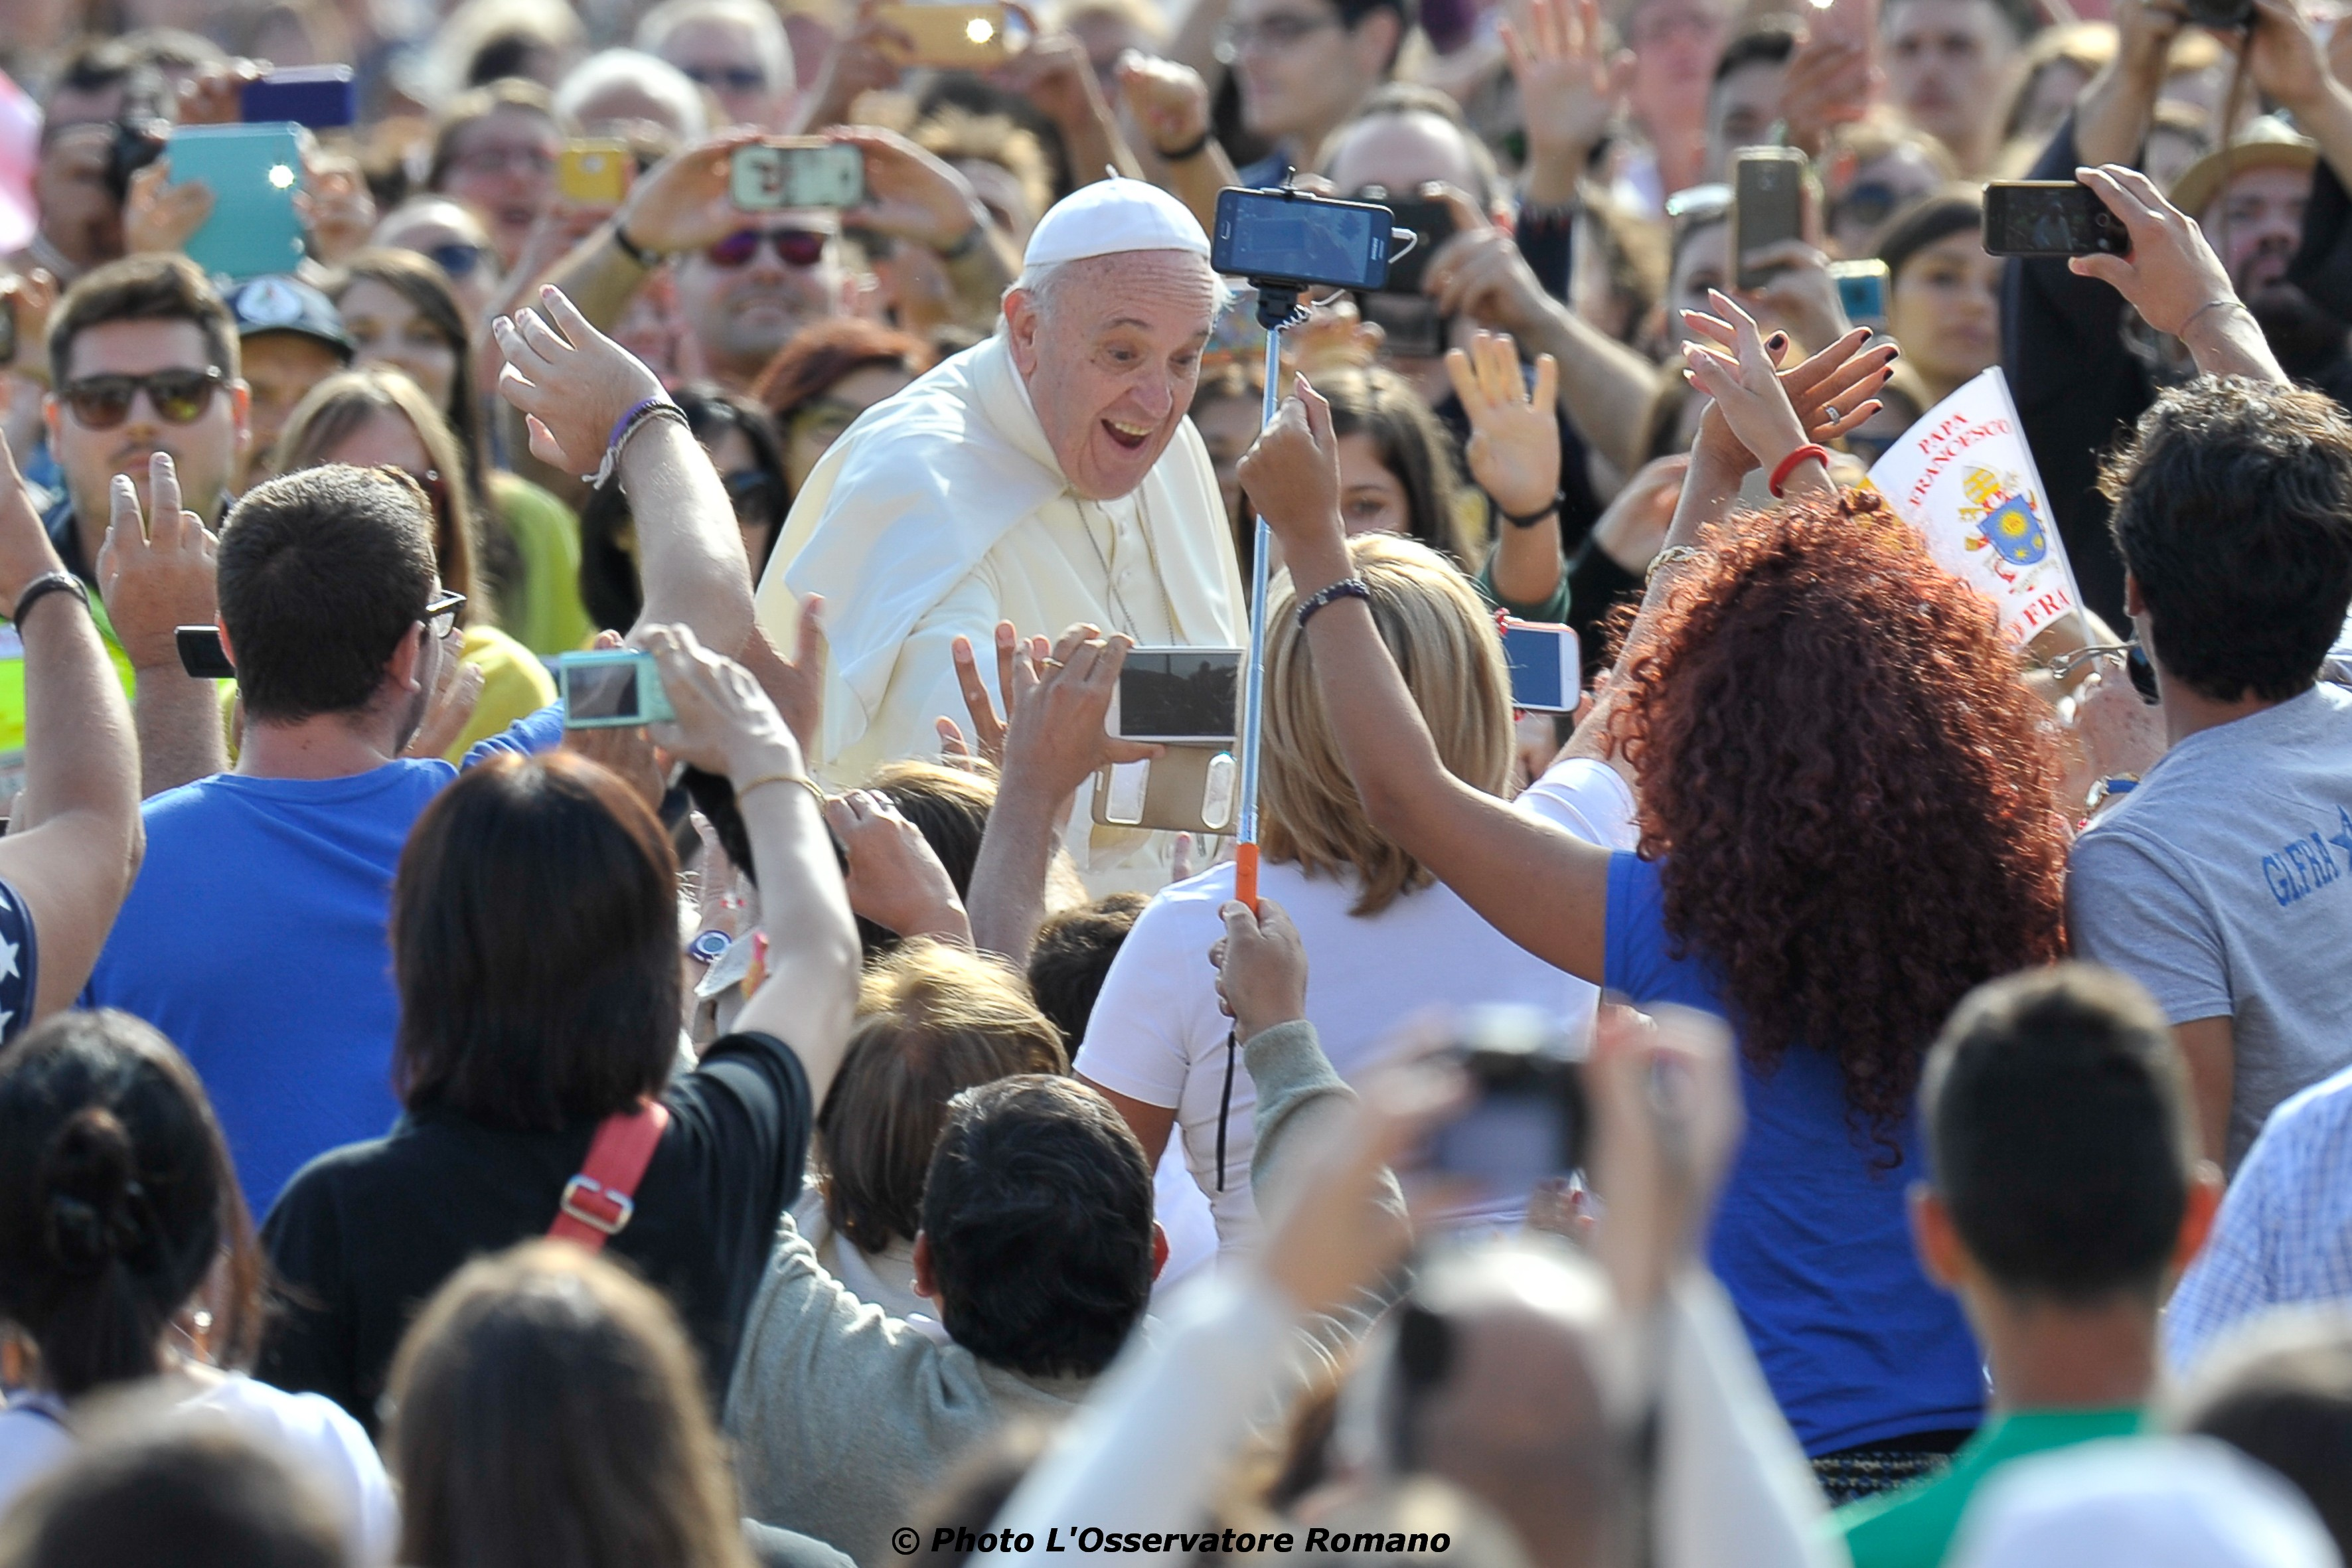 Pope Francis in Santa Marta. 7 September 2015